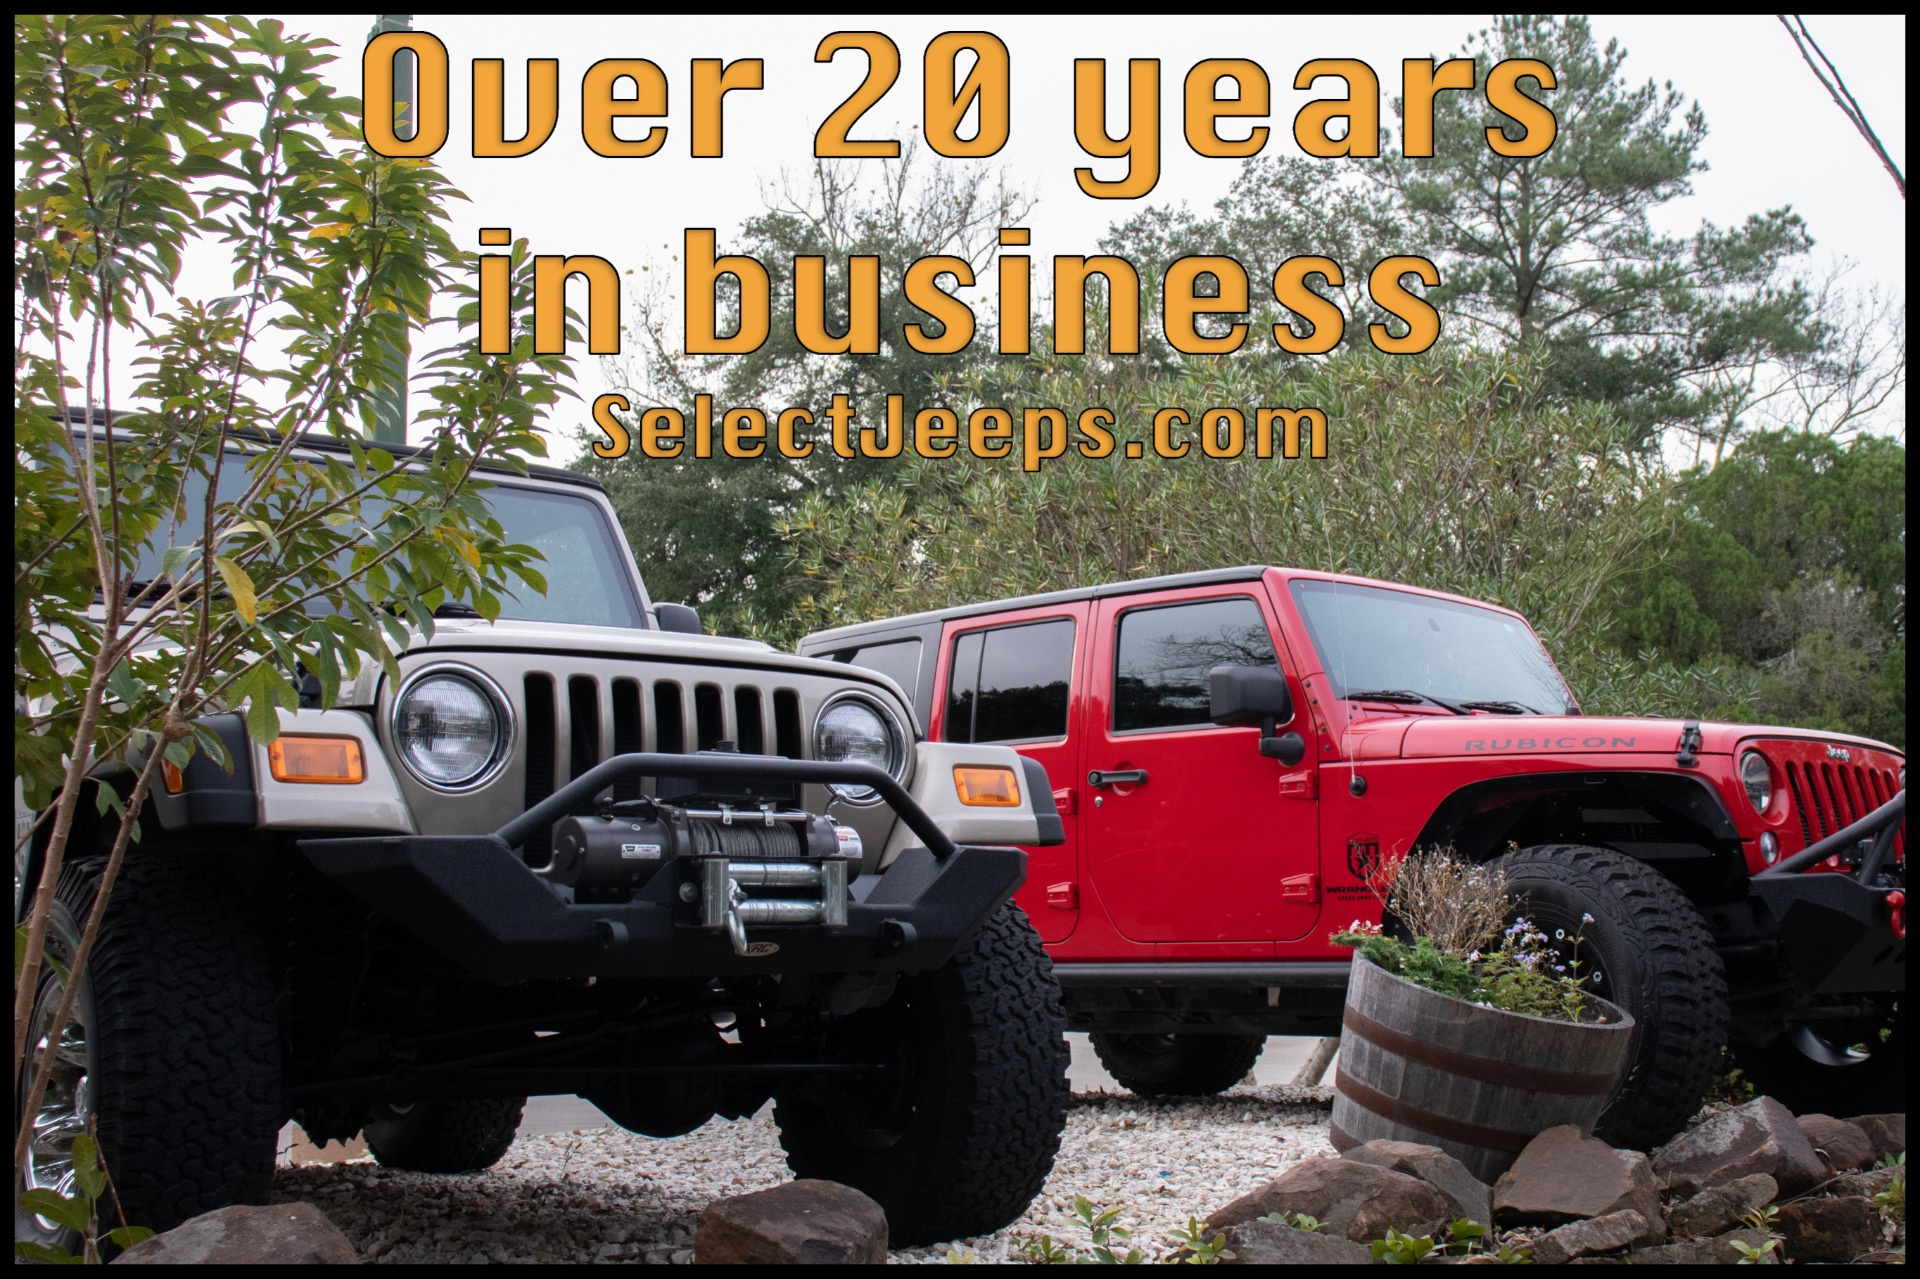 Used-2007-Jeep-Wrangler-Unlimited-X